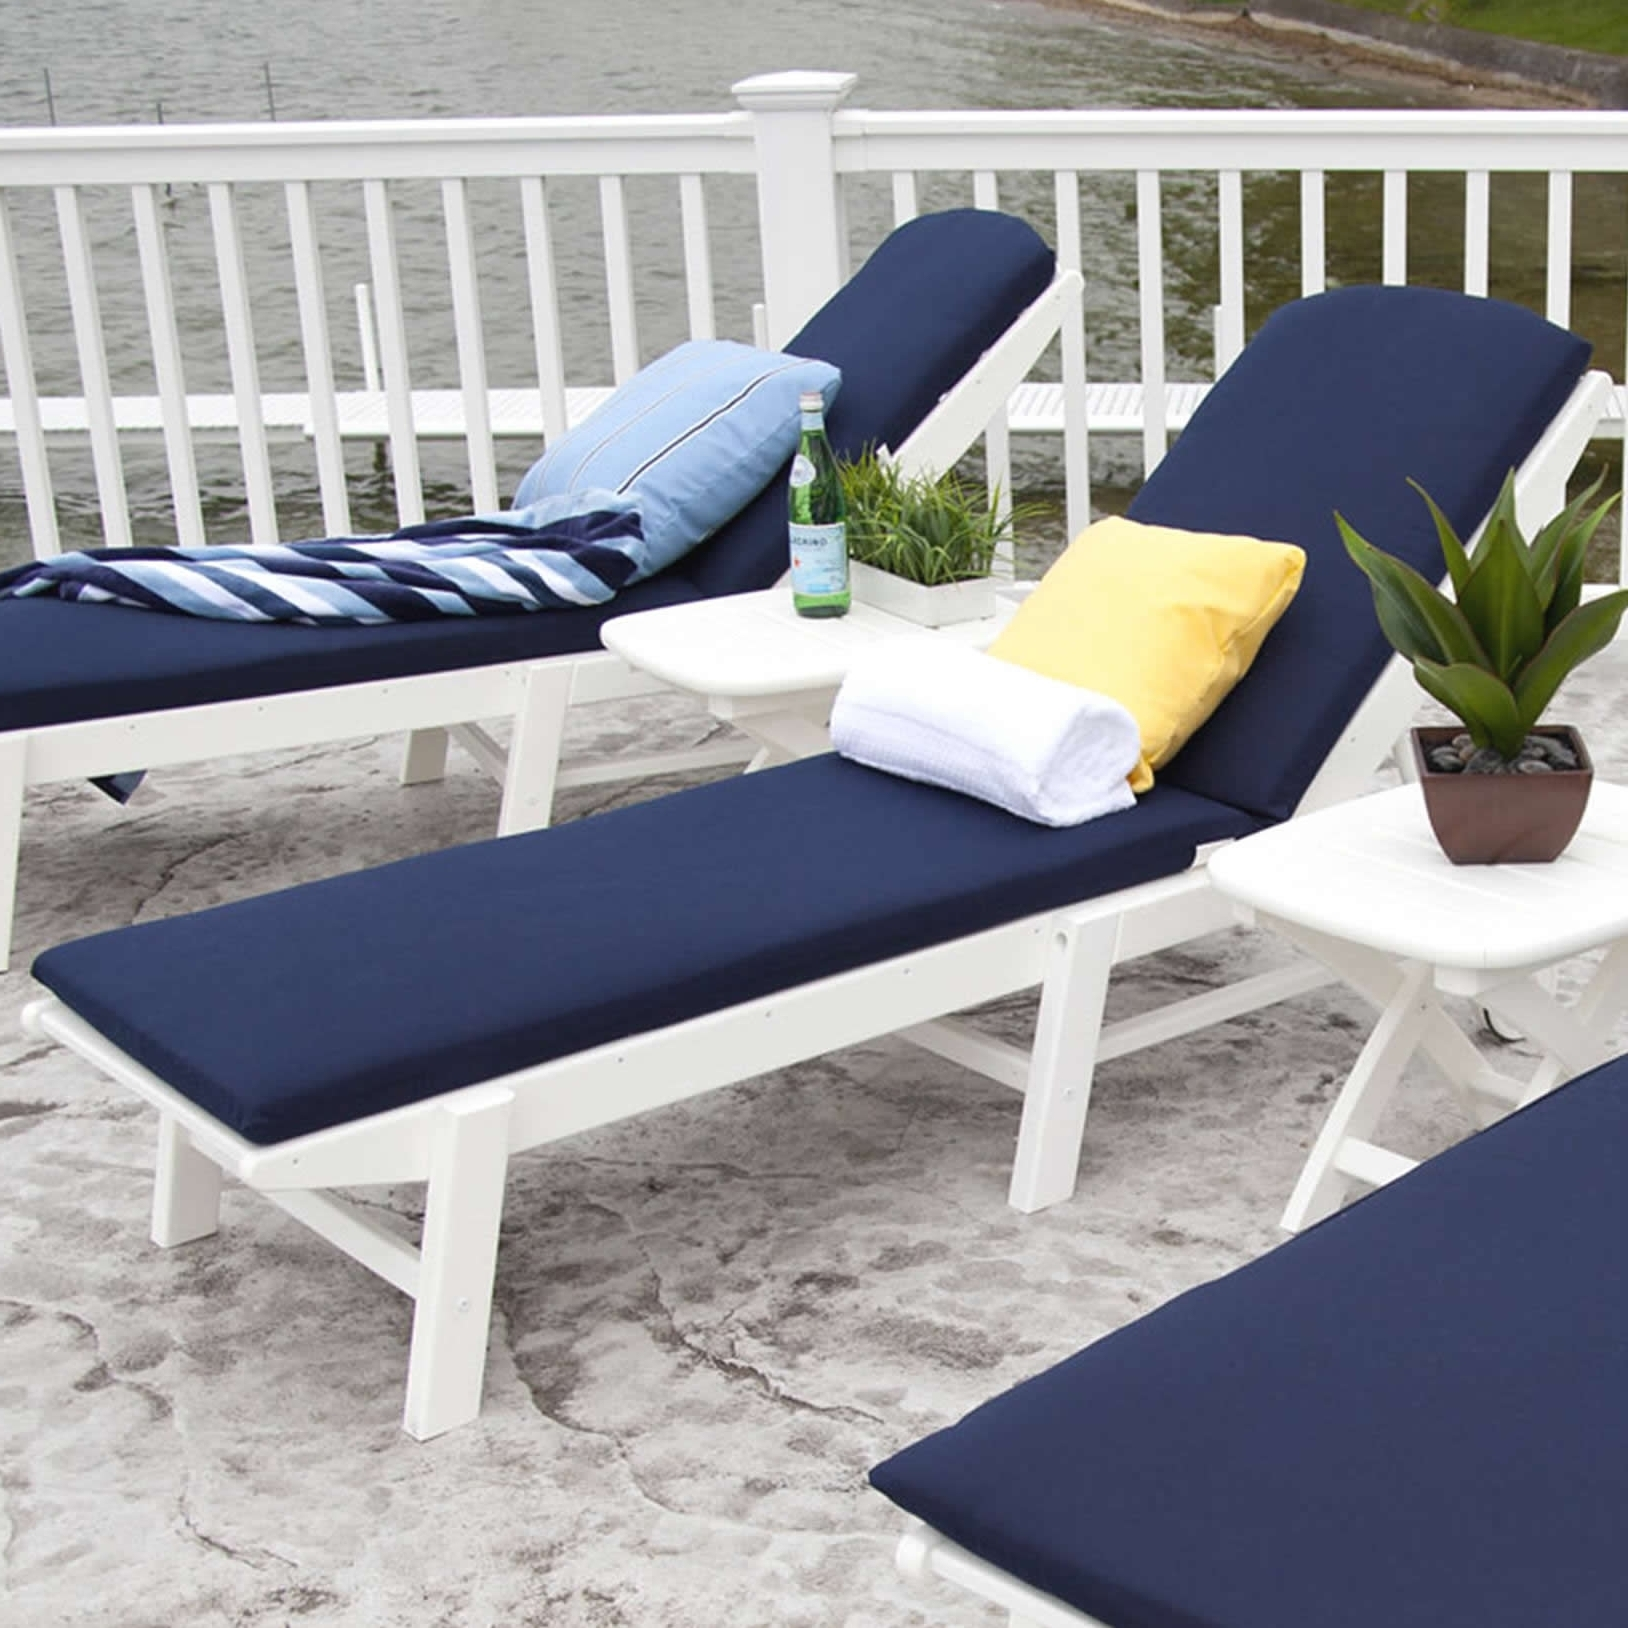 Chaise Cushions Intended For 2018 Polywood Nautical Chaise Lounge Cushions (View 4 of 15)